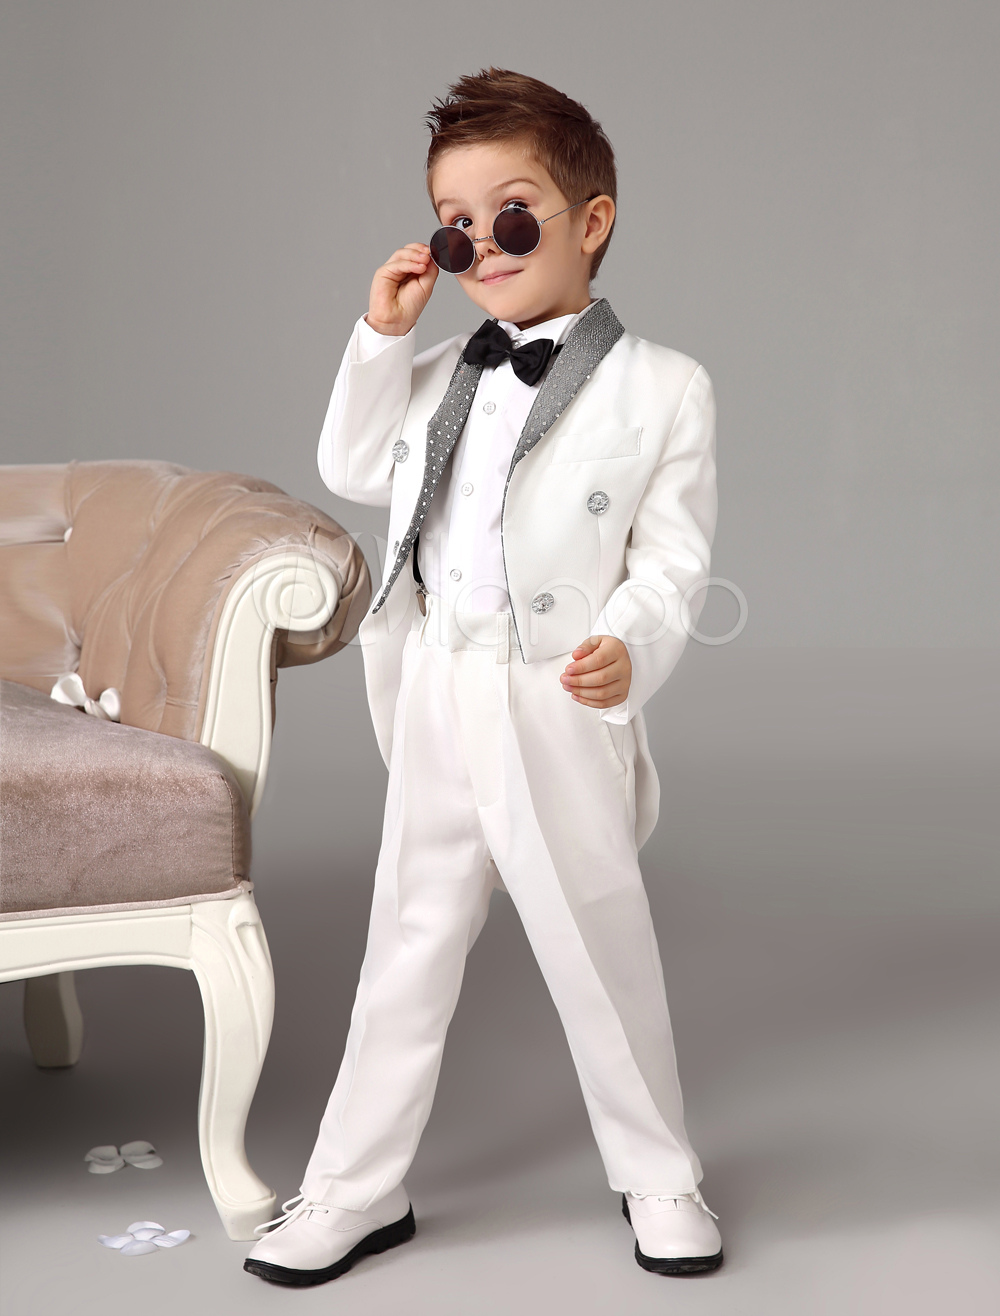 Buy Baby Boy Suit White Kids Wedding Tuxedo Set Jacket Pants Shirts Bow Tie 4 Pcs Ring Bearer Suits for $52.49 in Milanoo store